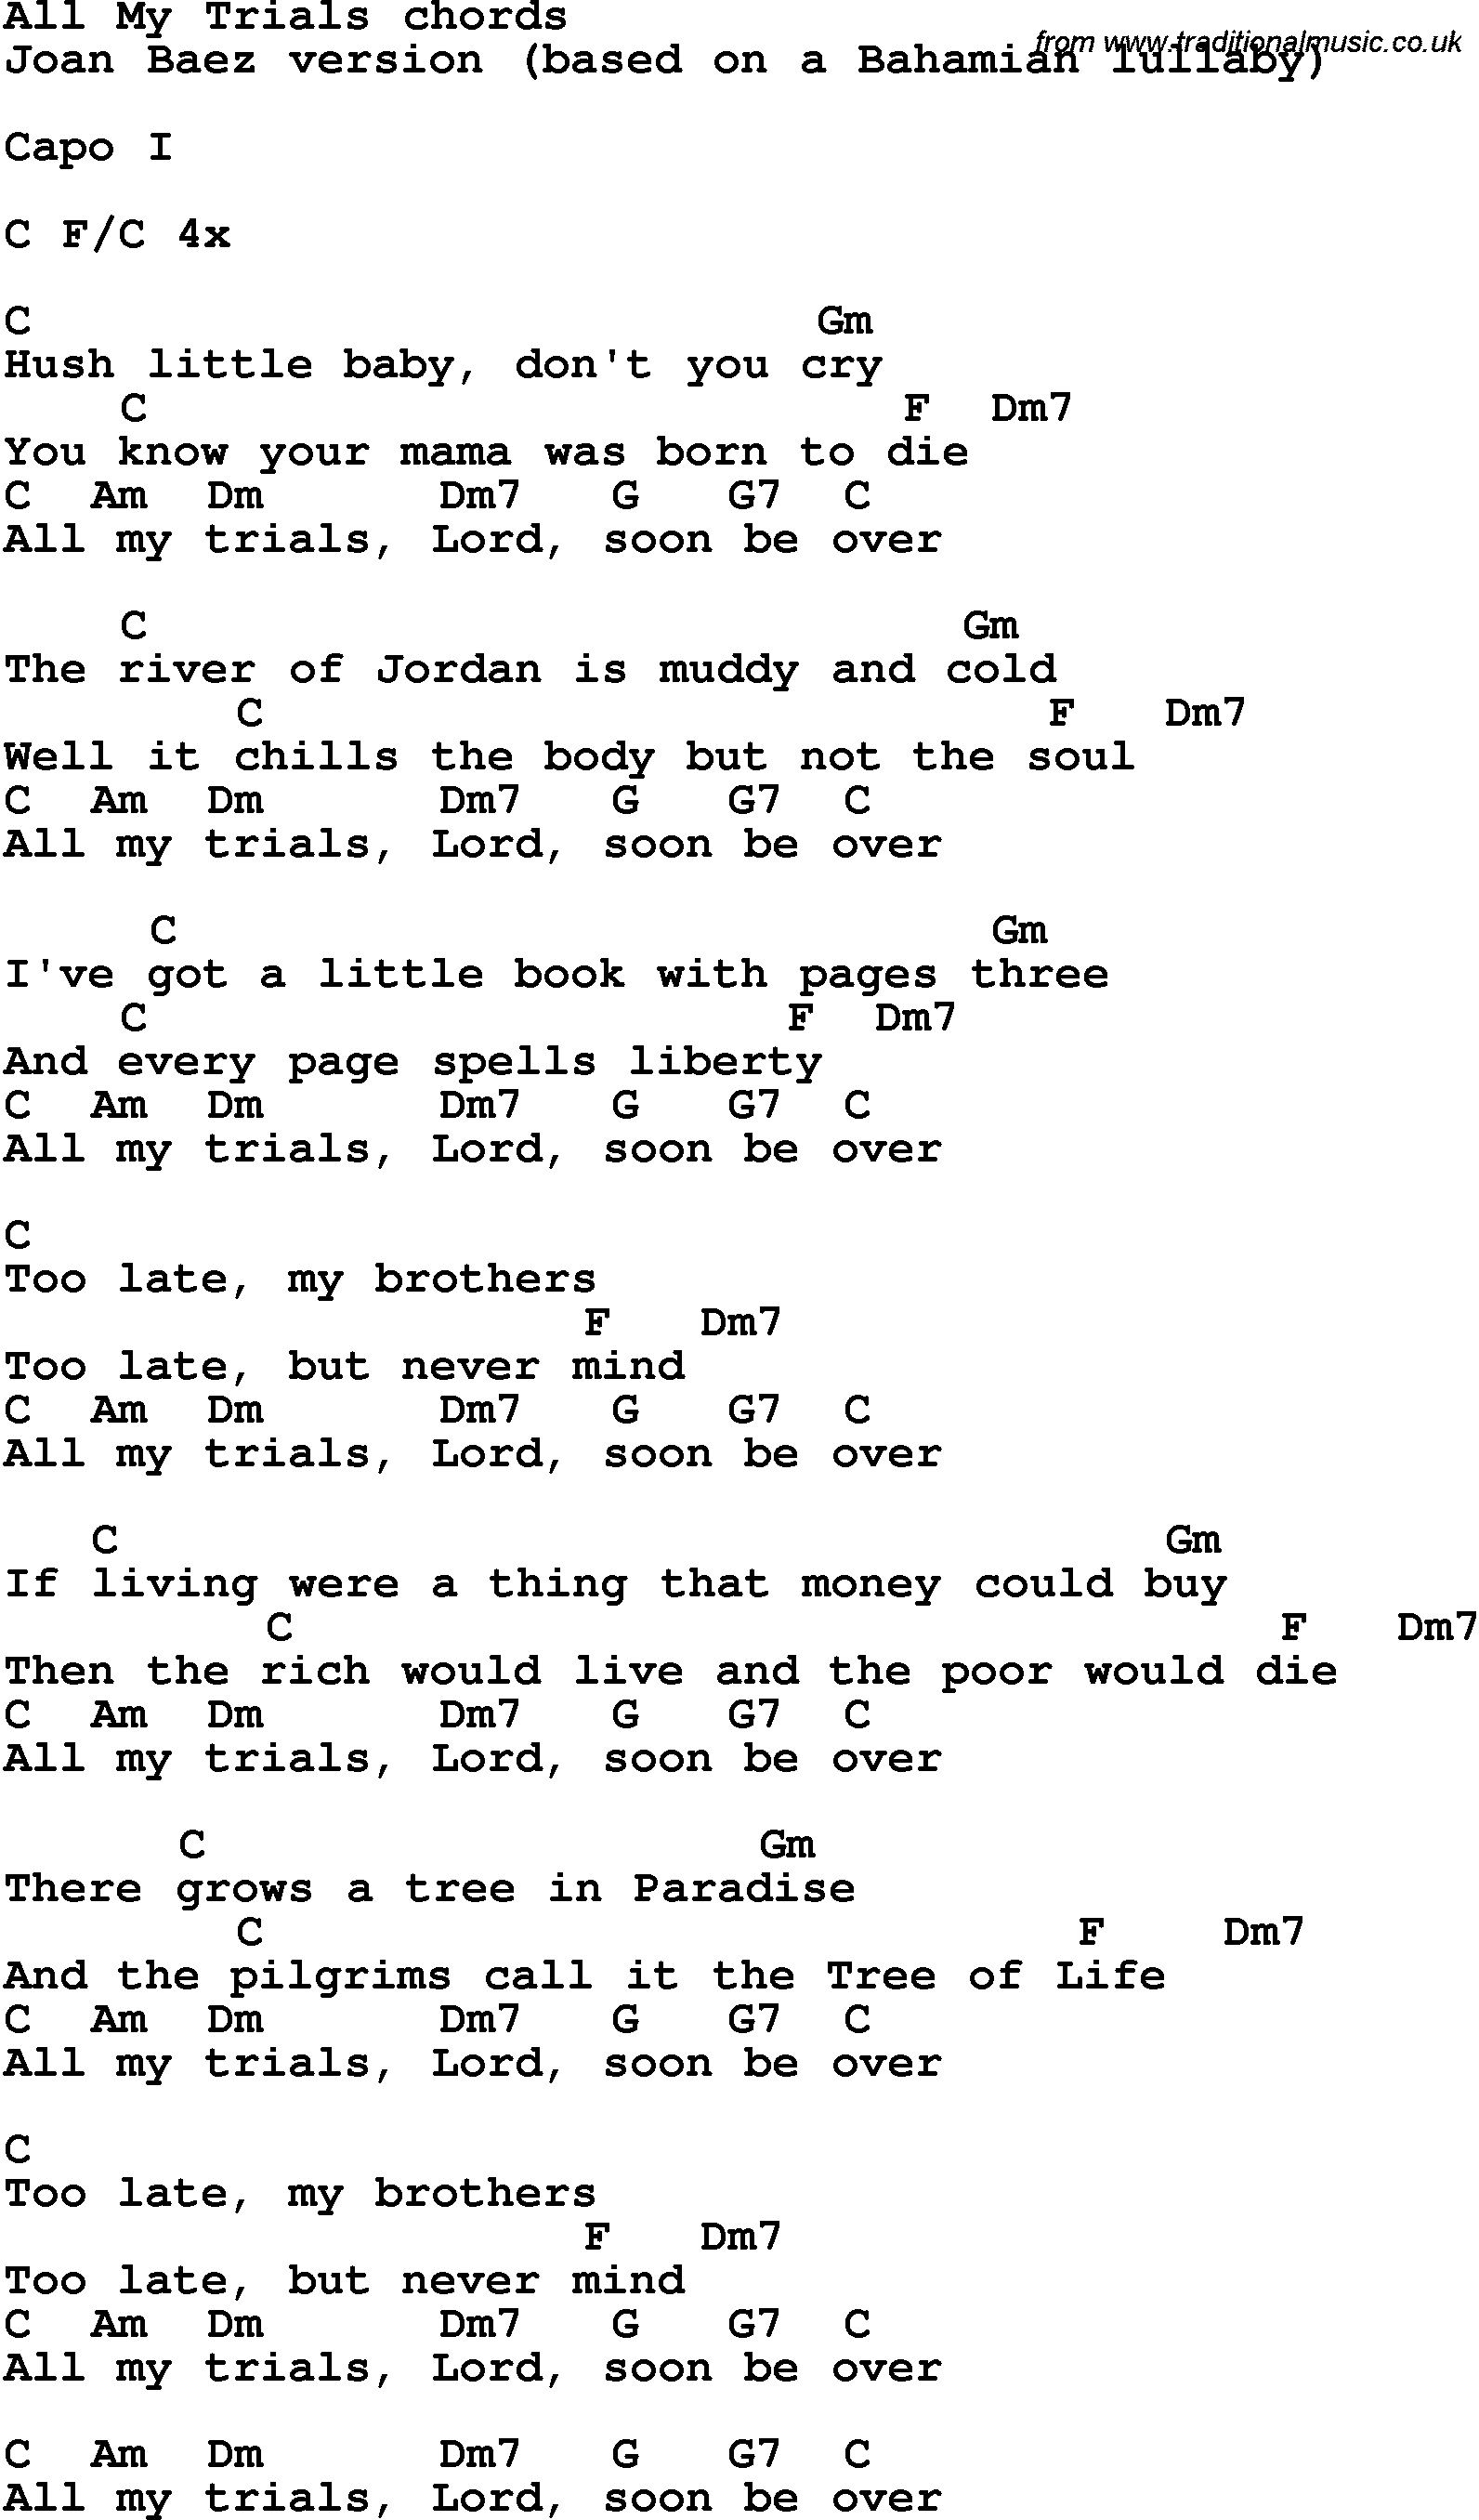 Song lyrics with guitar chords for all my trials joan baez rock and pop song lyrics with chords for all my trials joan baez hexwebz Choice Image